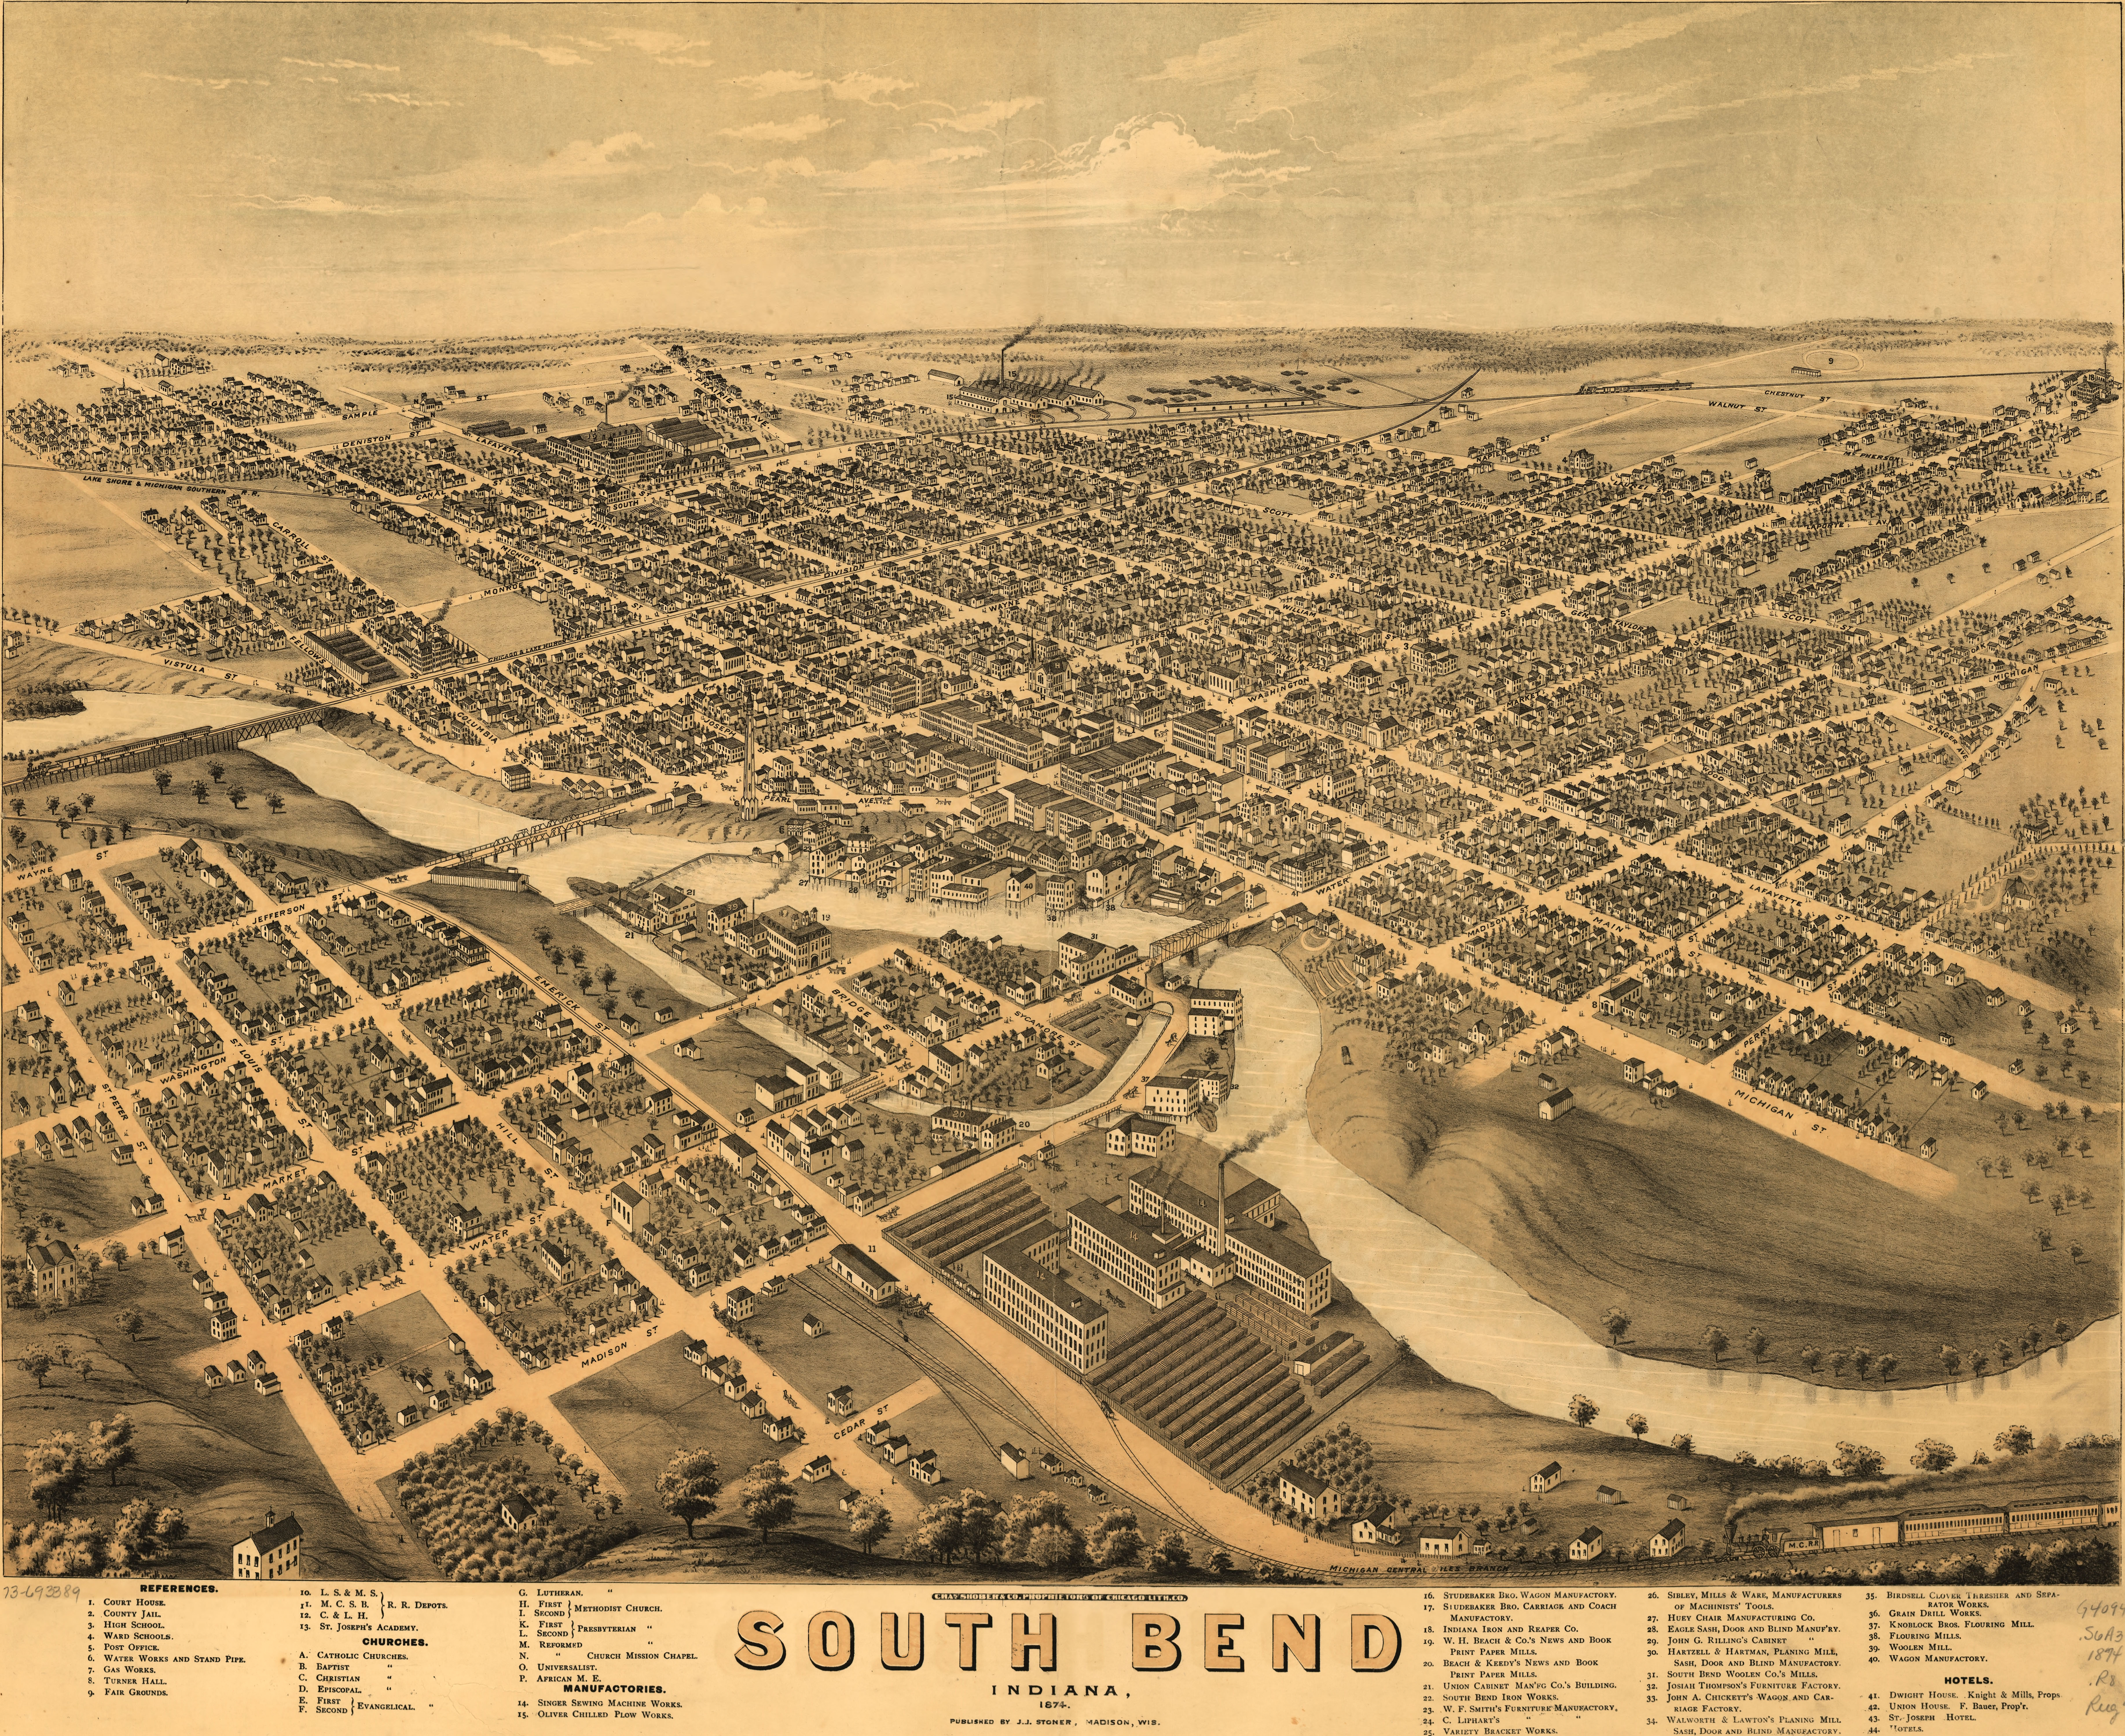 Birdseye View Of South Bend Indiana - South bend map